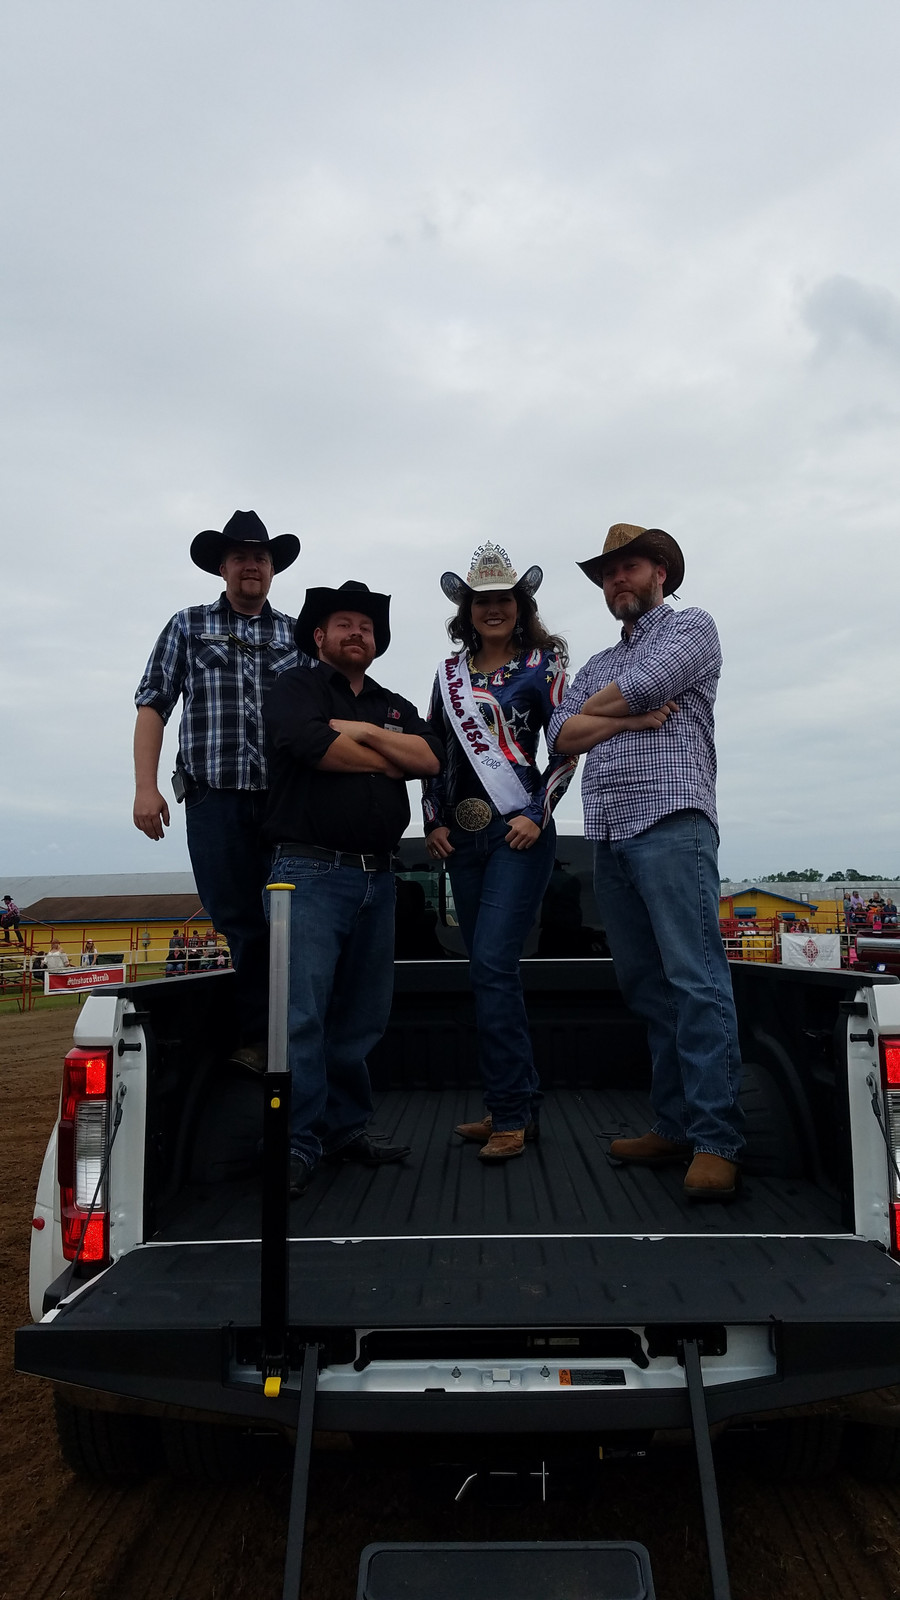 Jc Lewis Ford >> Gold Sponsor Jc Lewis Ford Folks Hanging With Miss Rodeo